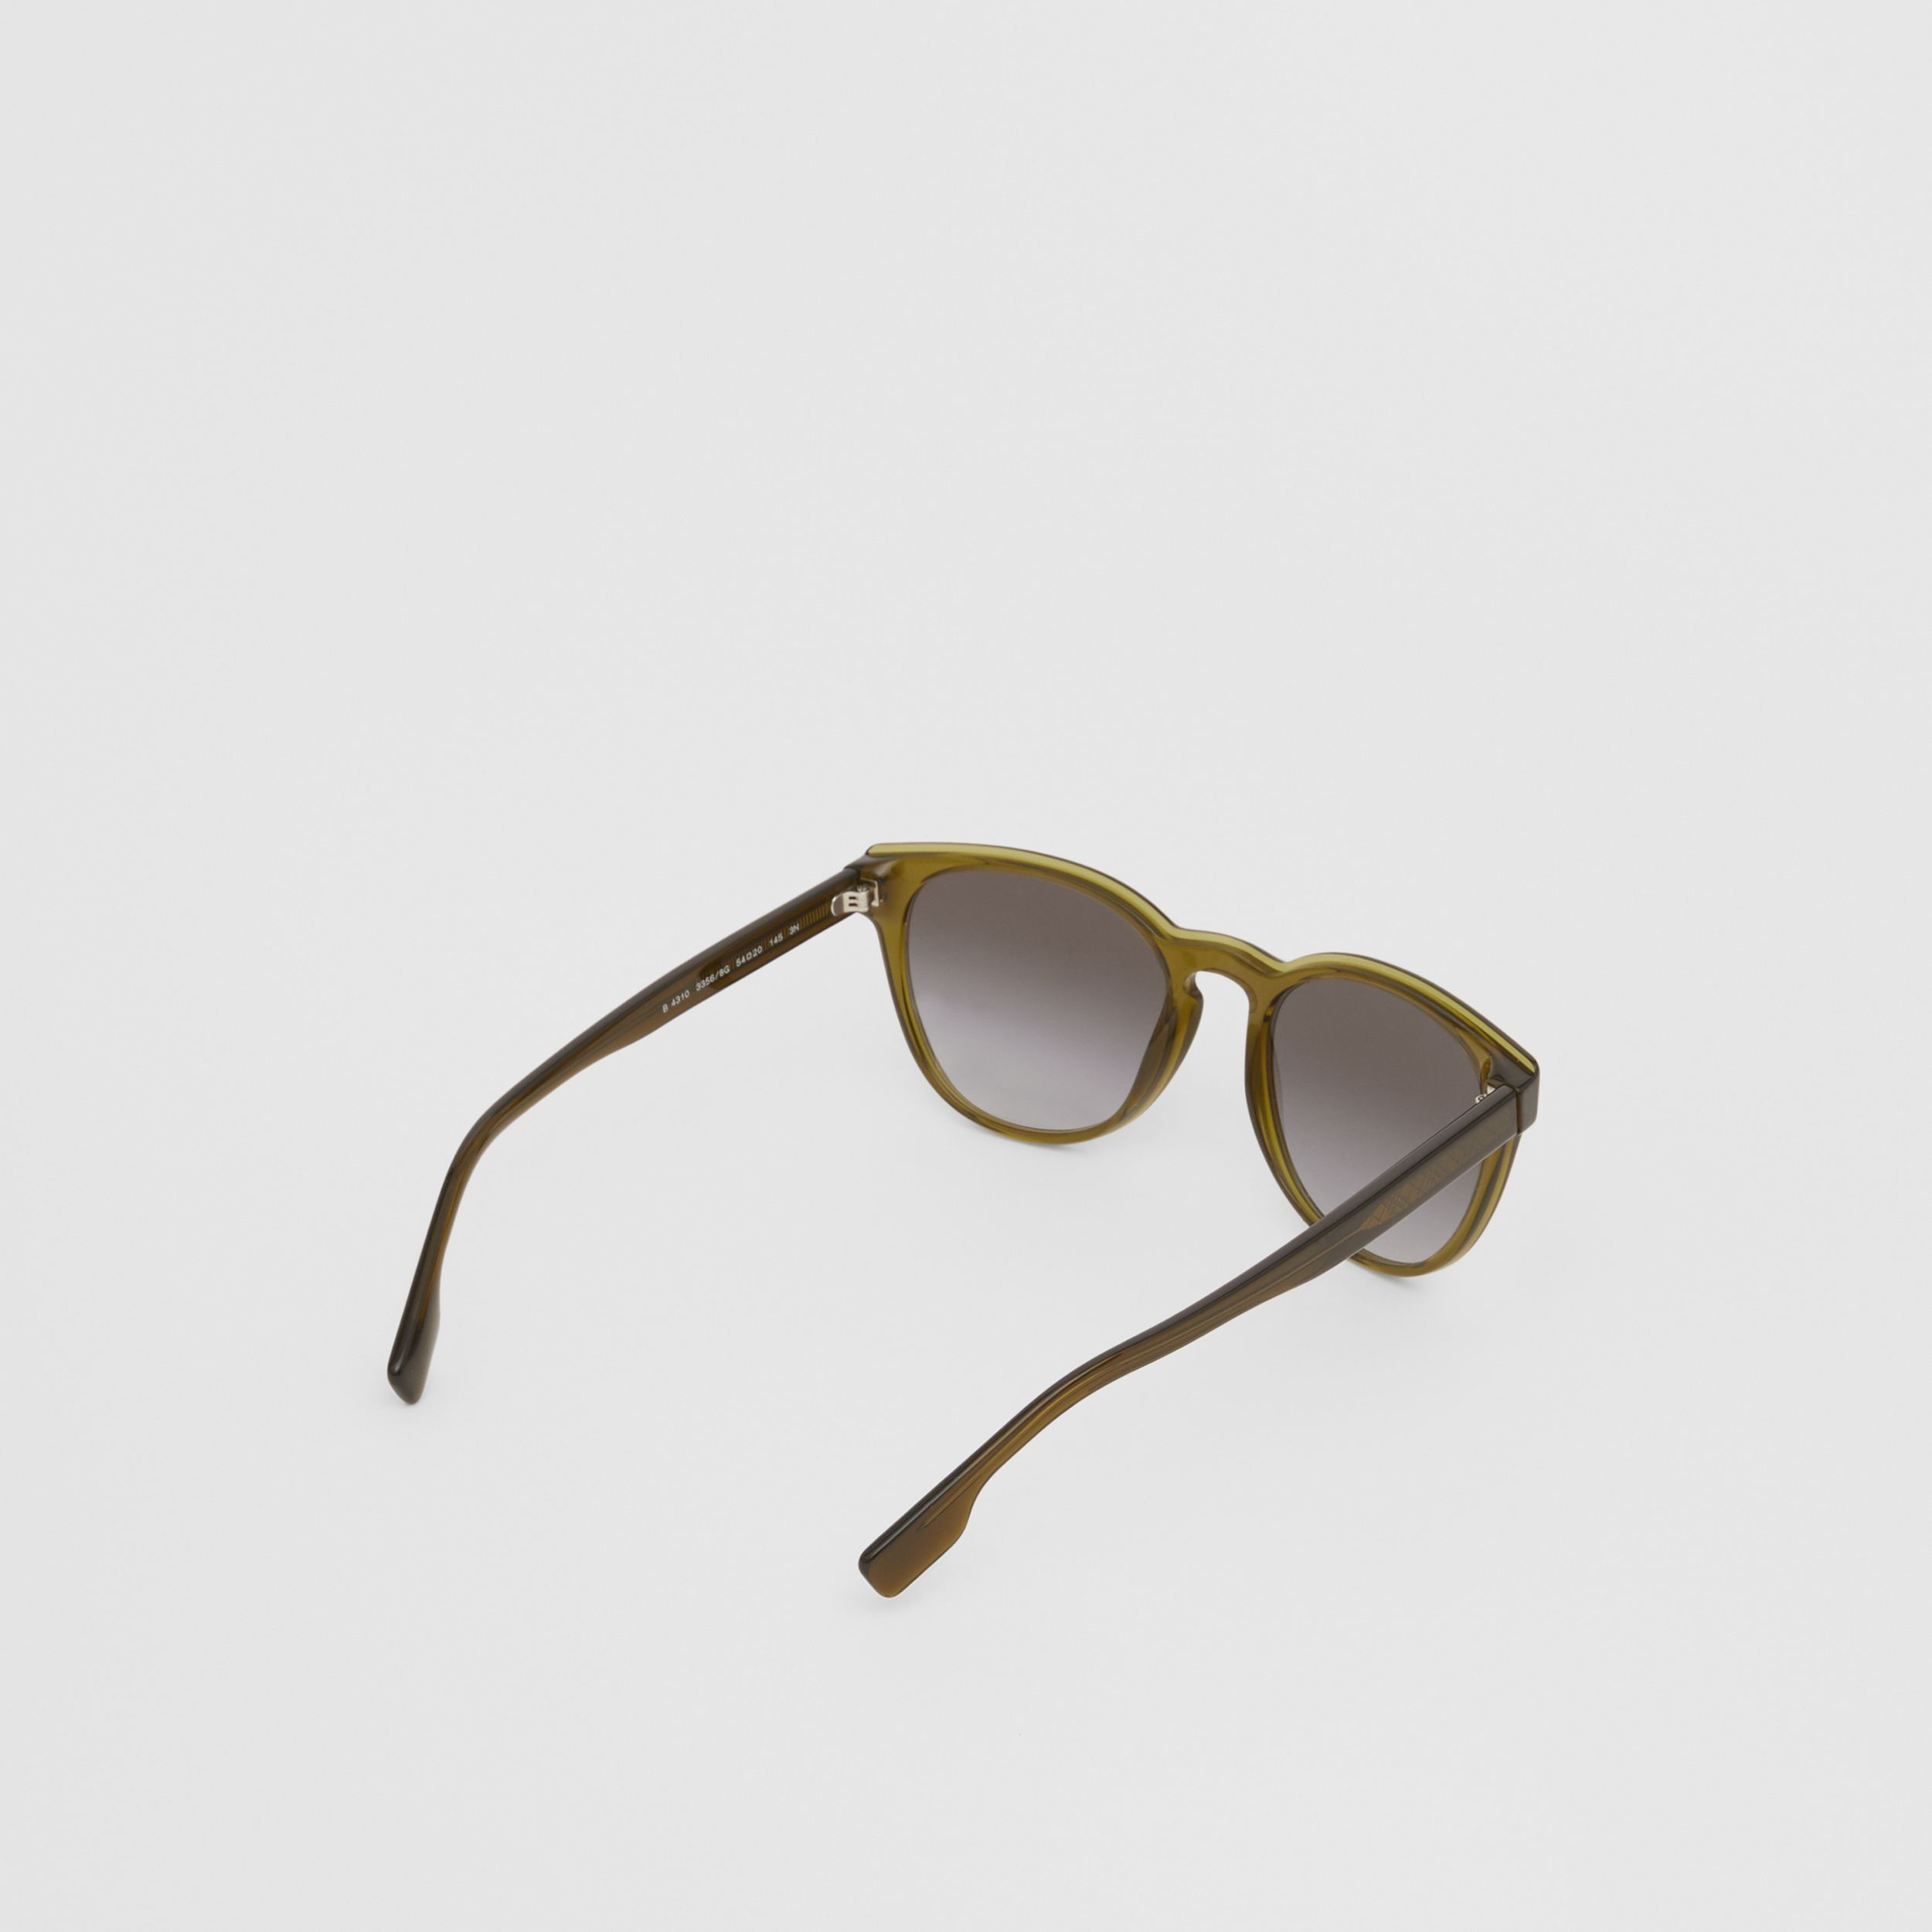 Round Frame Sunglasses in Olive - Men | Burberry - 4